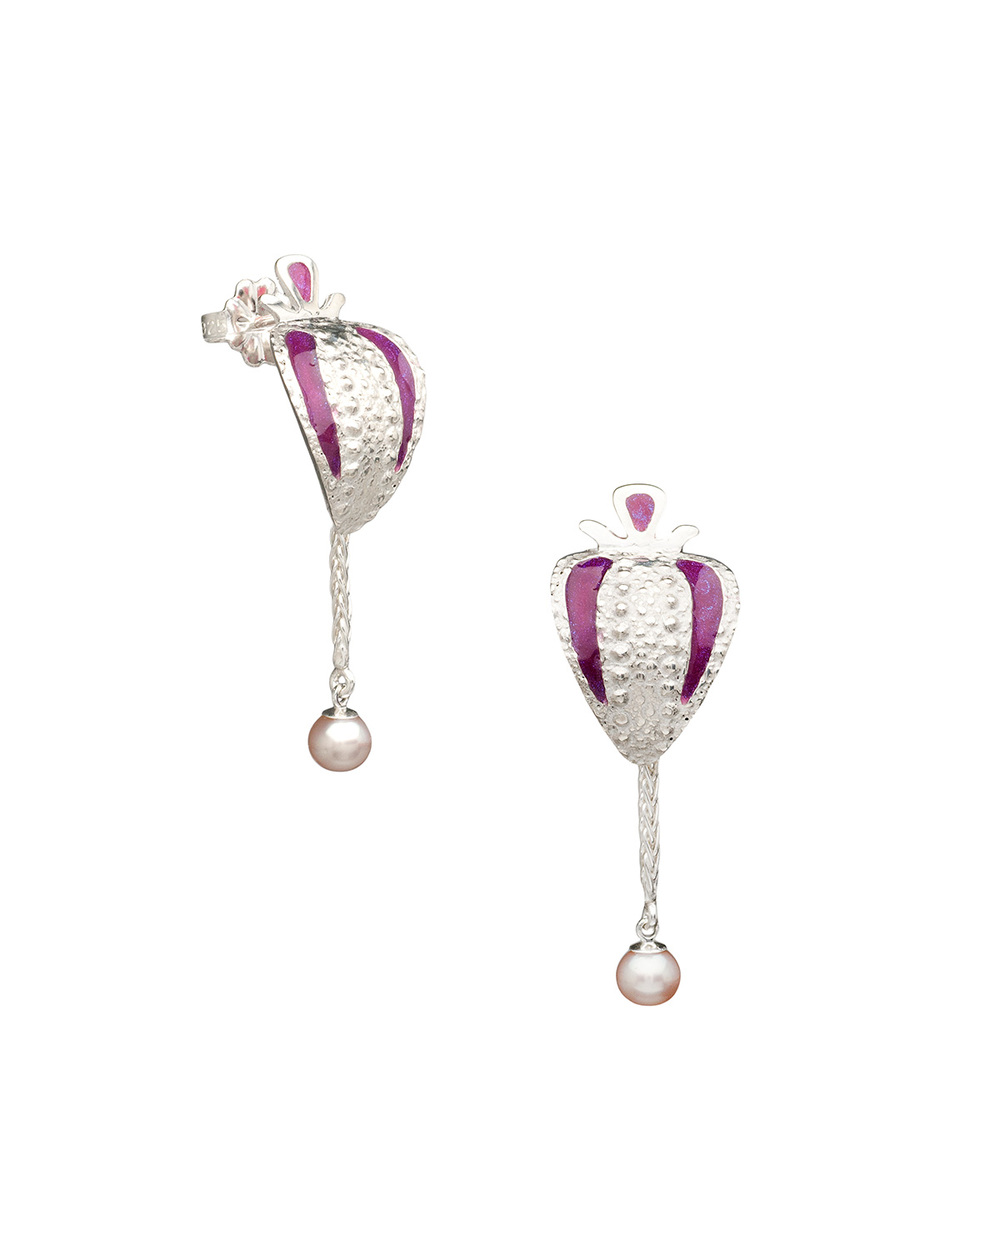 2015-10-Mary-Lynn-Podiluk-Argot-Earrings-P102a.jpg